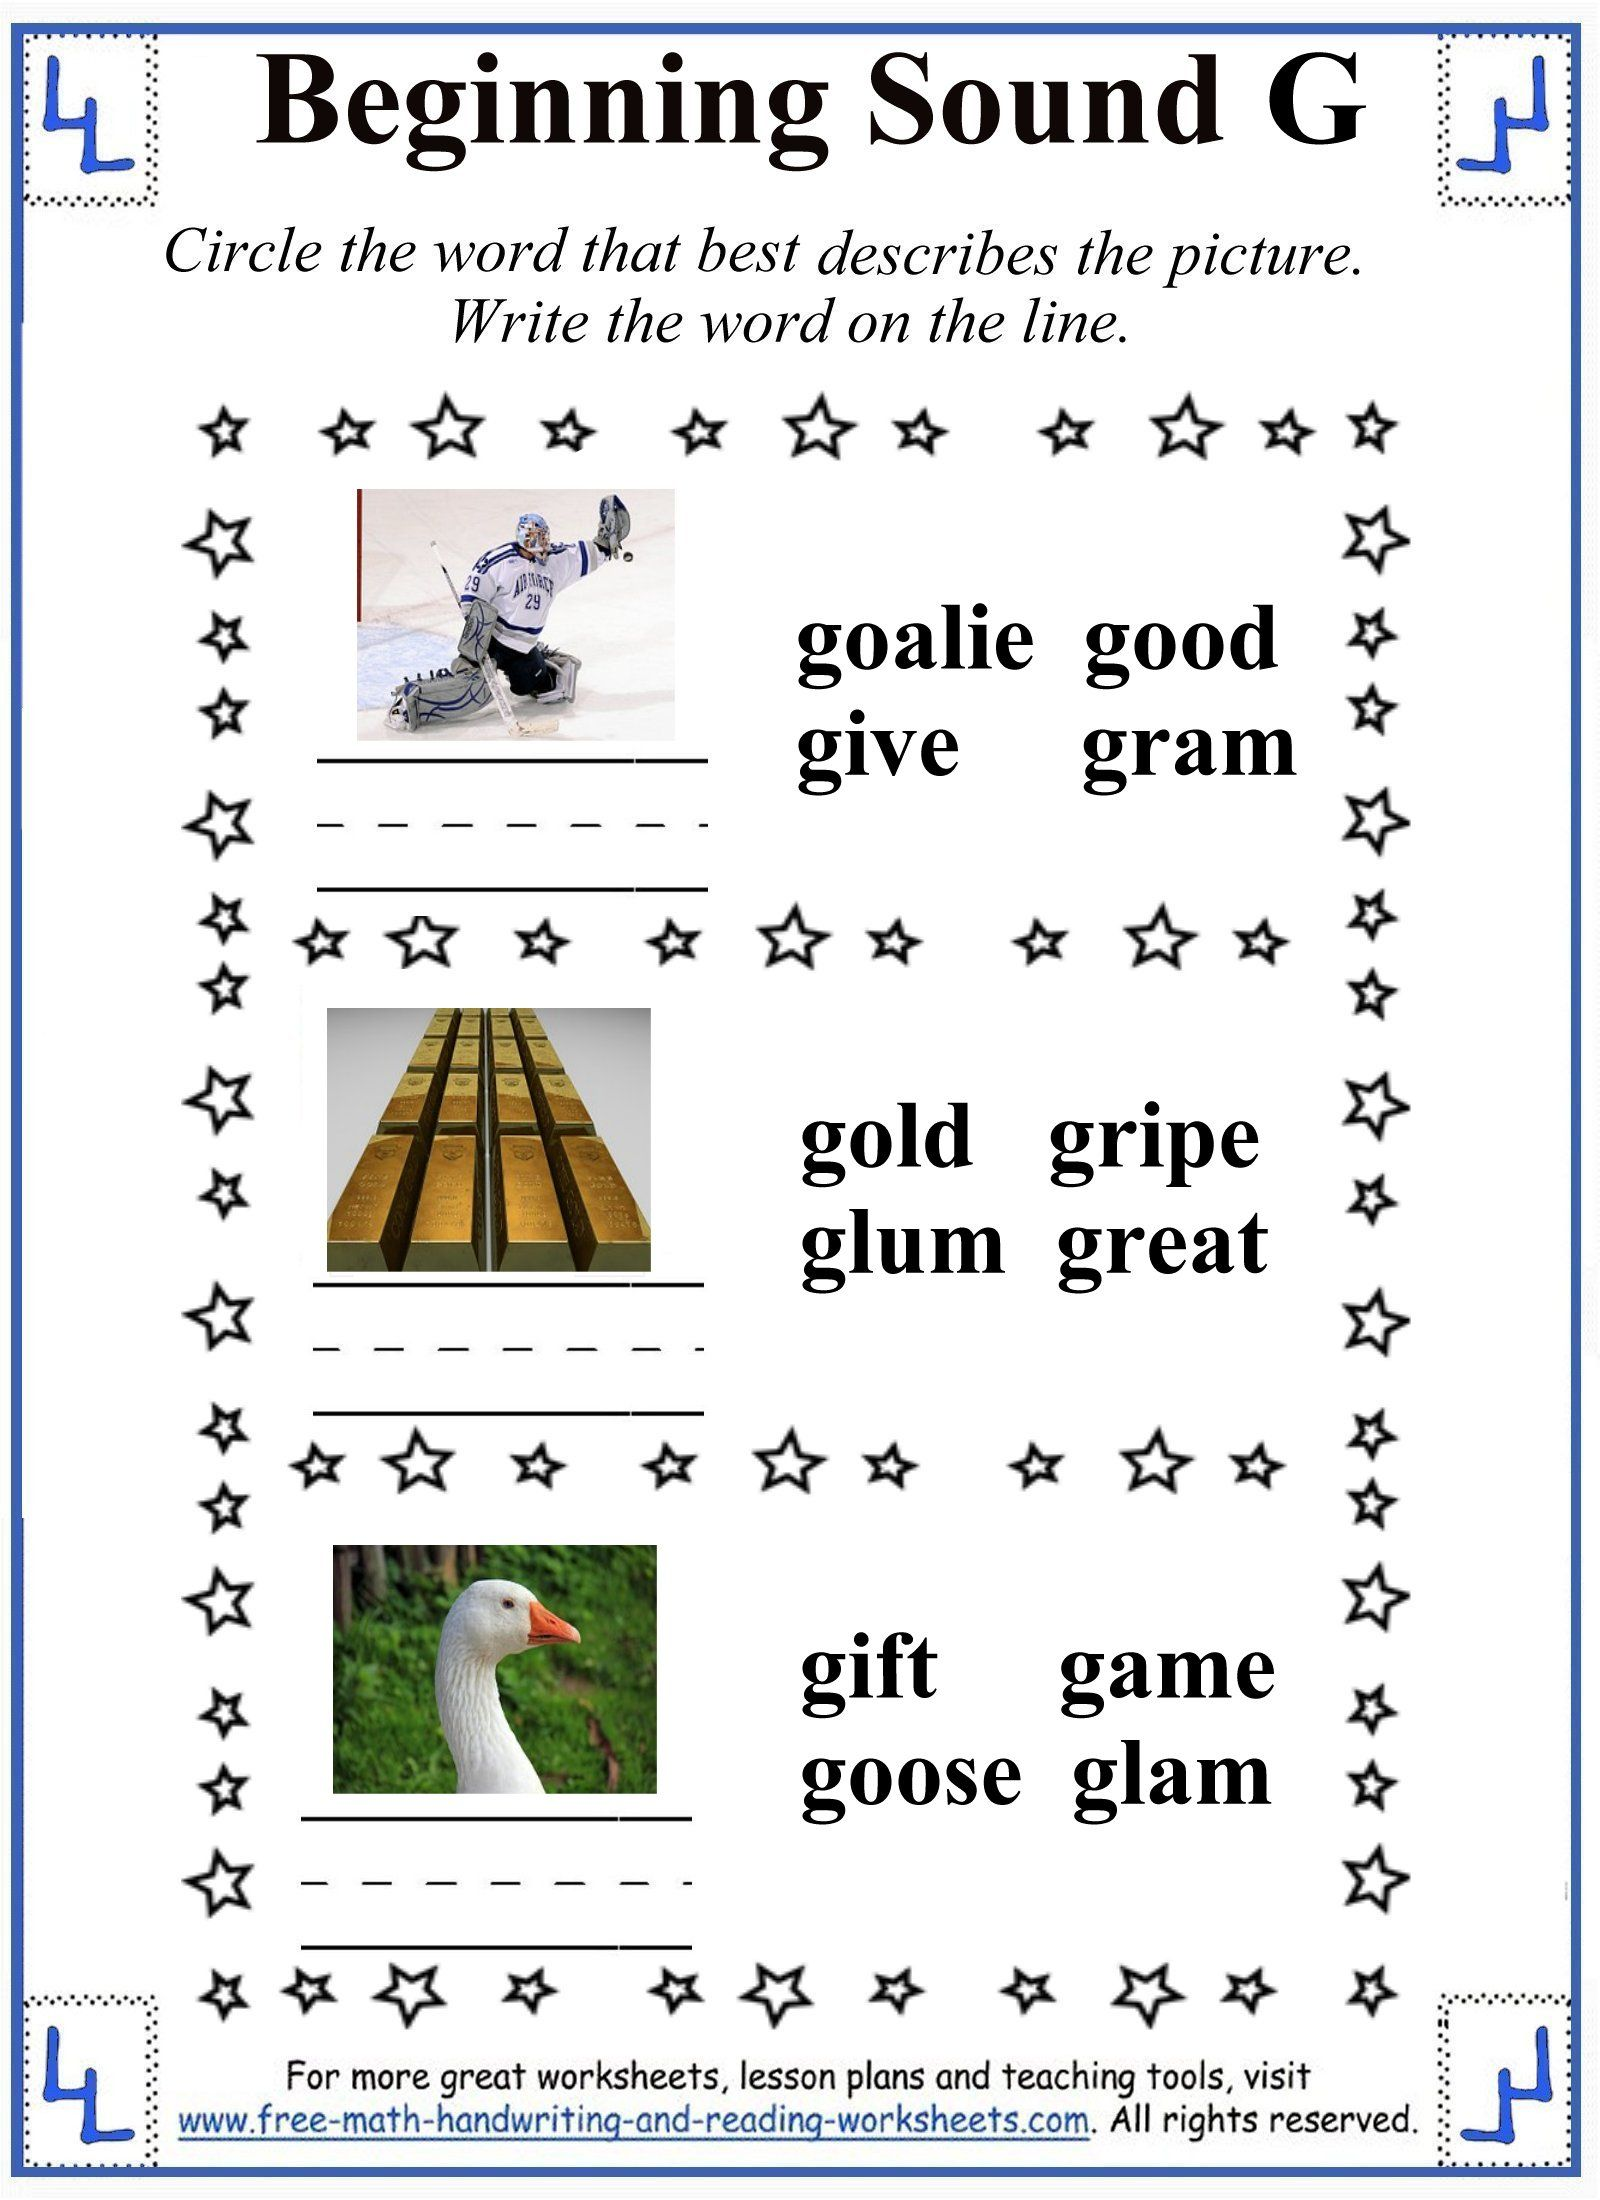 Learn the hard /g/ sound with these free letter G worksheet activities and  tasks covering beginning and ending sounds.